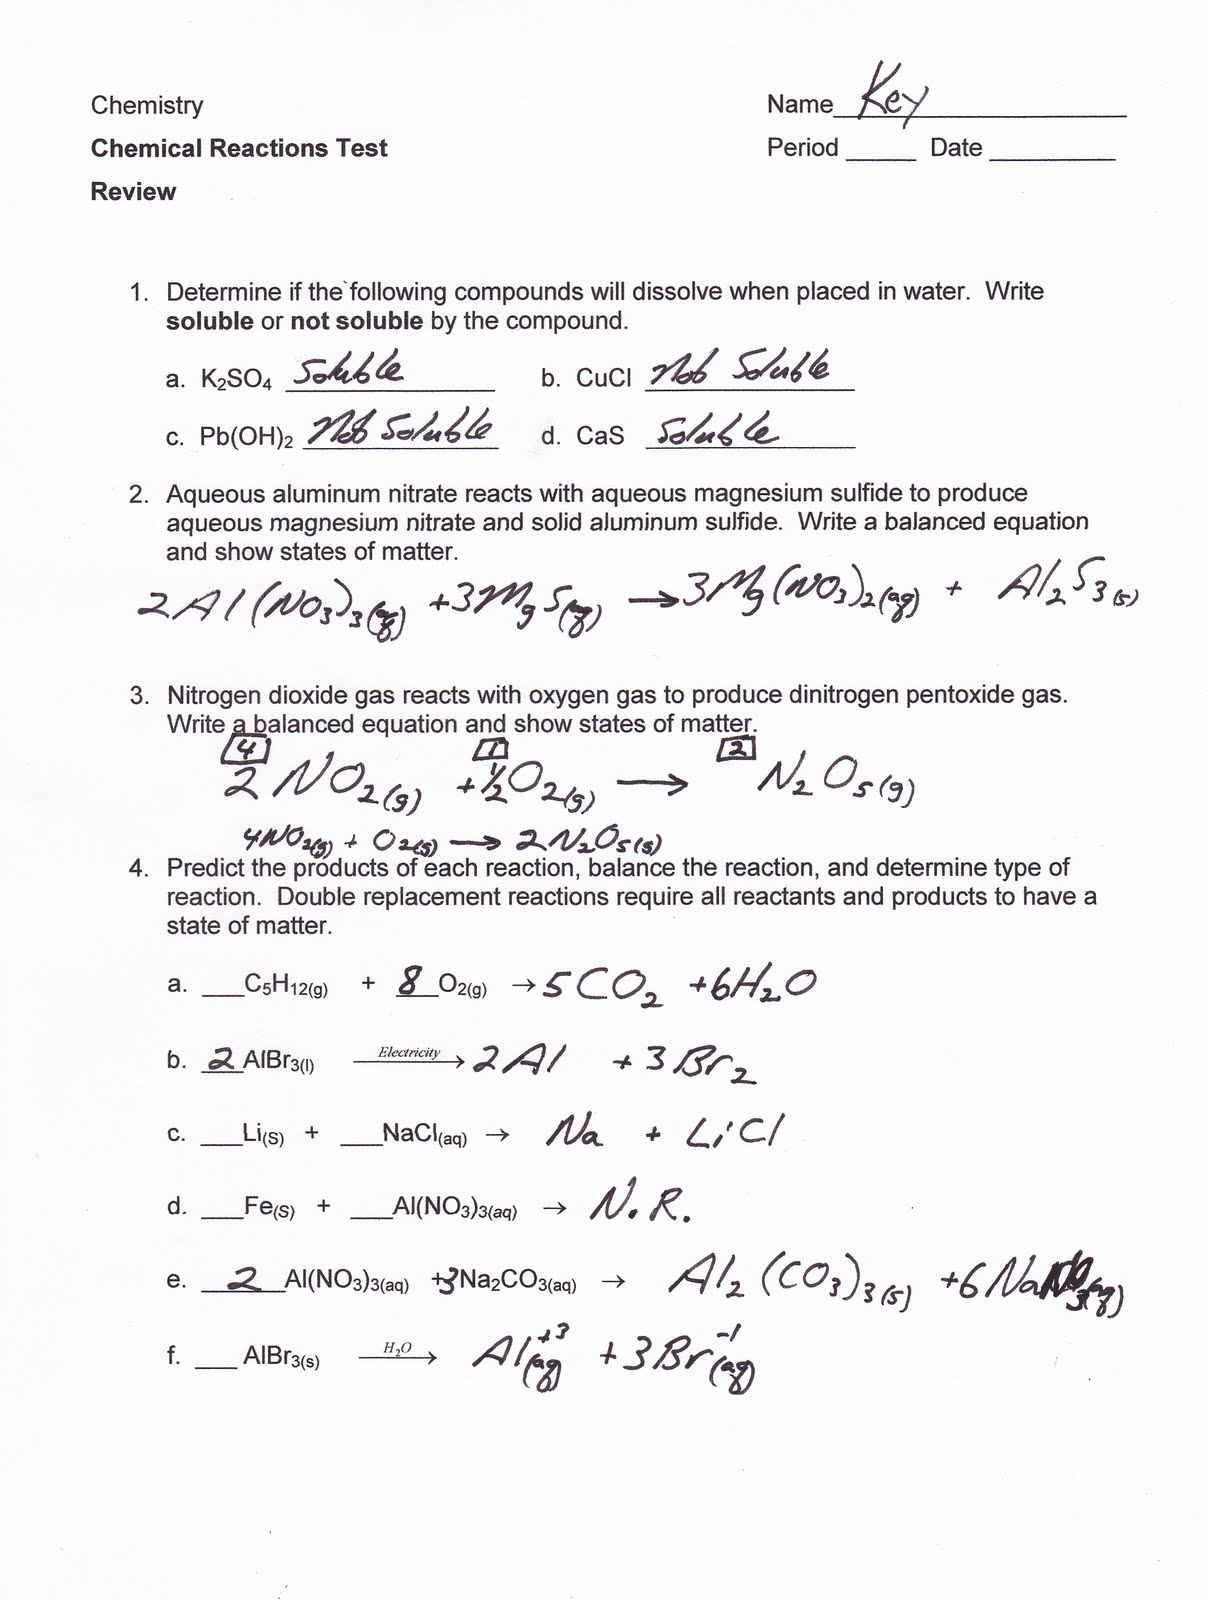 Worksheets Double Replacement Reactions Worksheet mr brueckners chemistry class hhs 2011 12 chemical for those of you experiencing a little difficulty on the balancing reactions worksheet i have some advice possible sticki